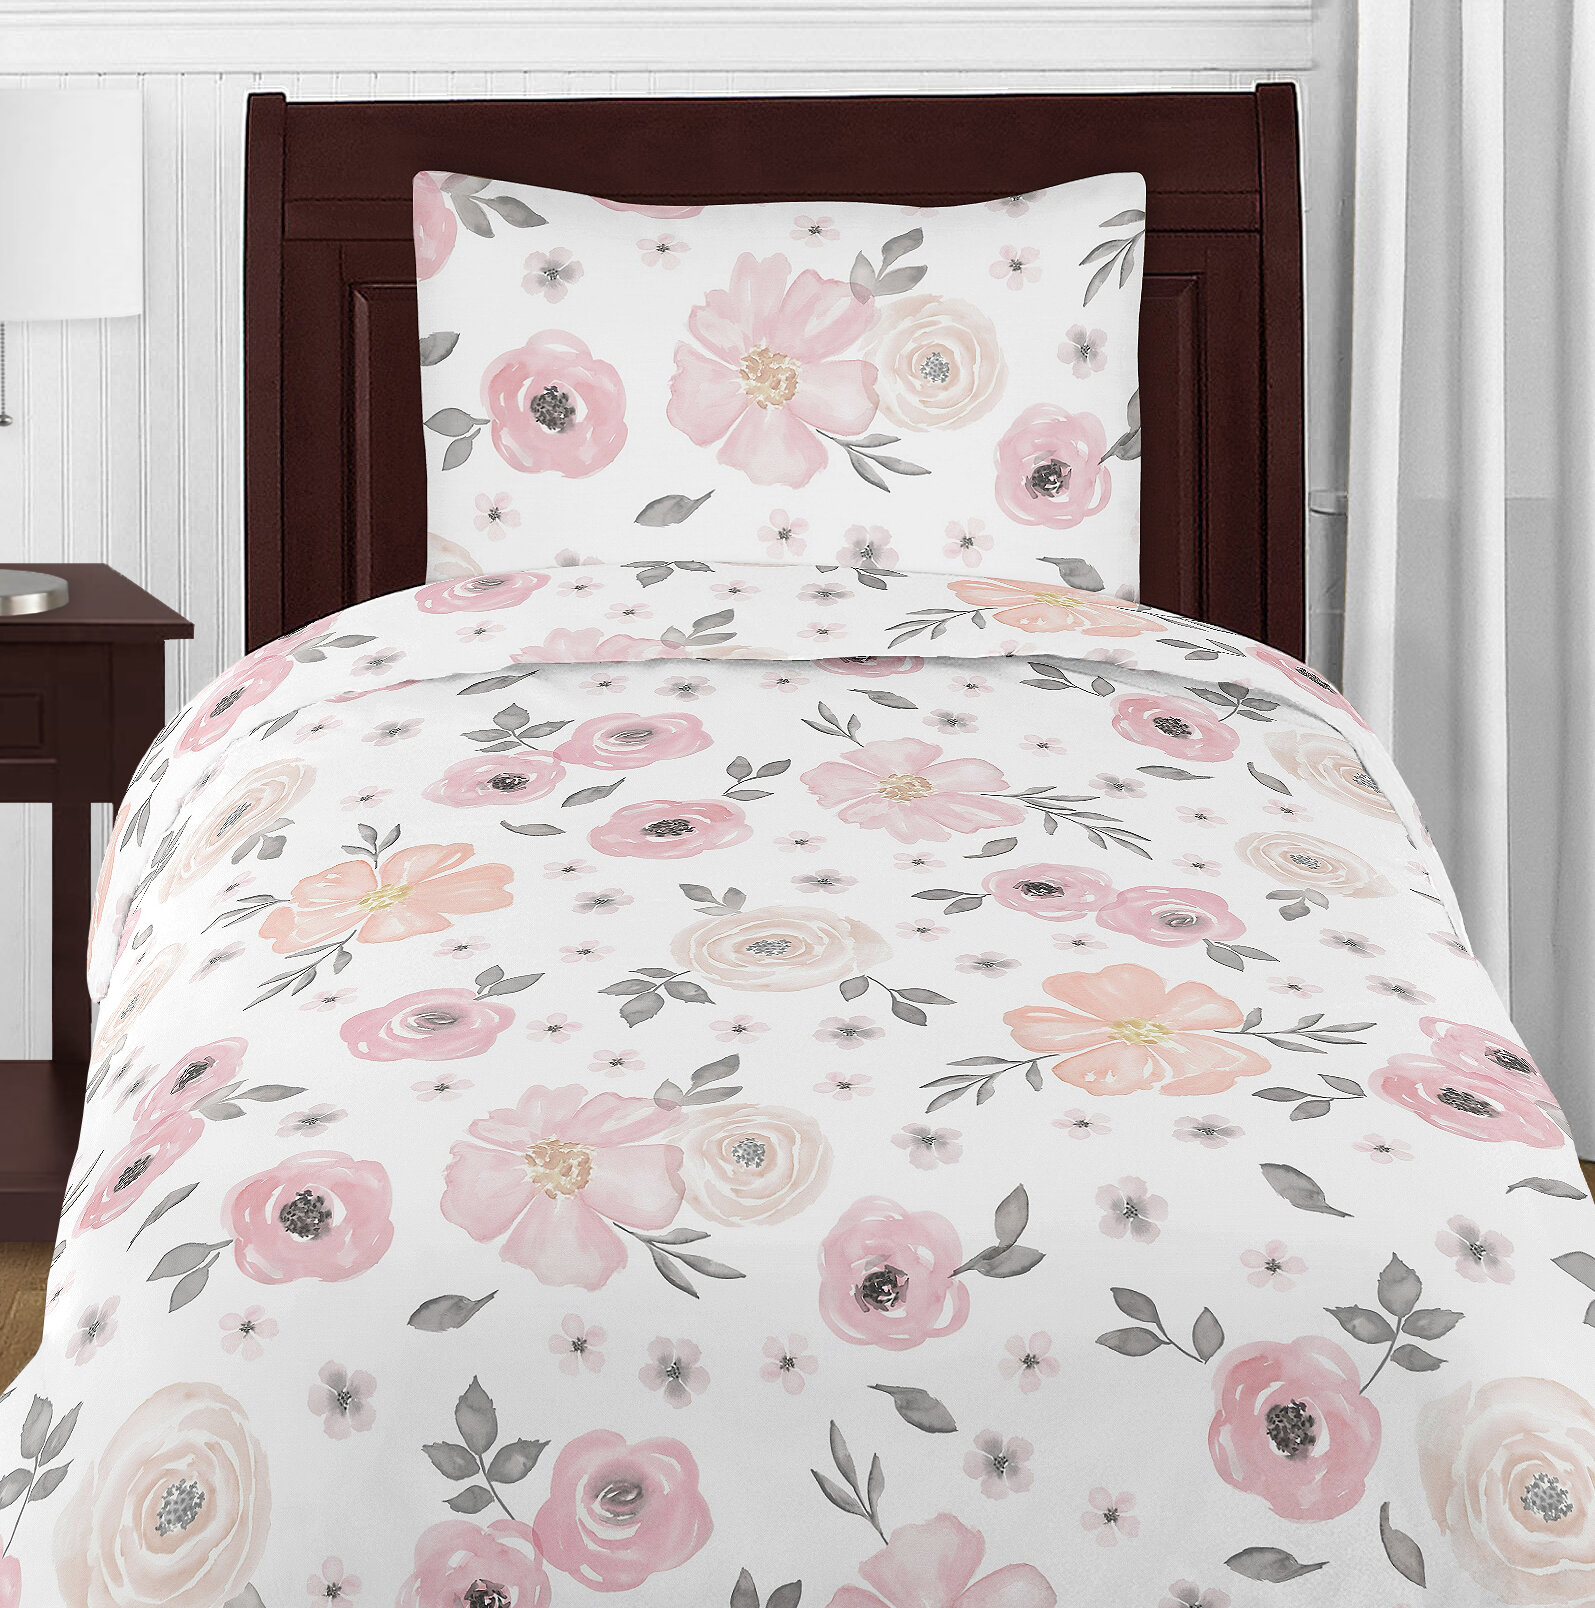 luxury bedding gallery set kids back go shop for lik full ada floral and vintage comforter designer disini comforters twin boutique jill or gypsy with jack